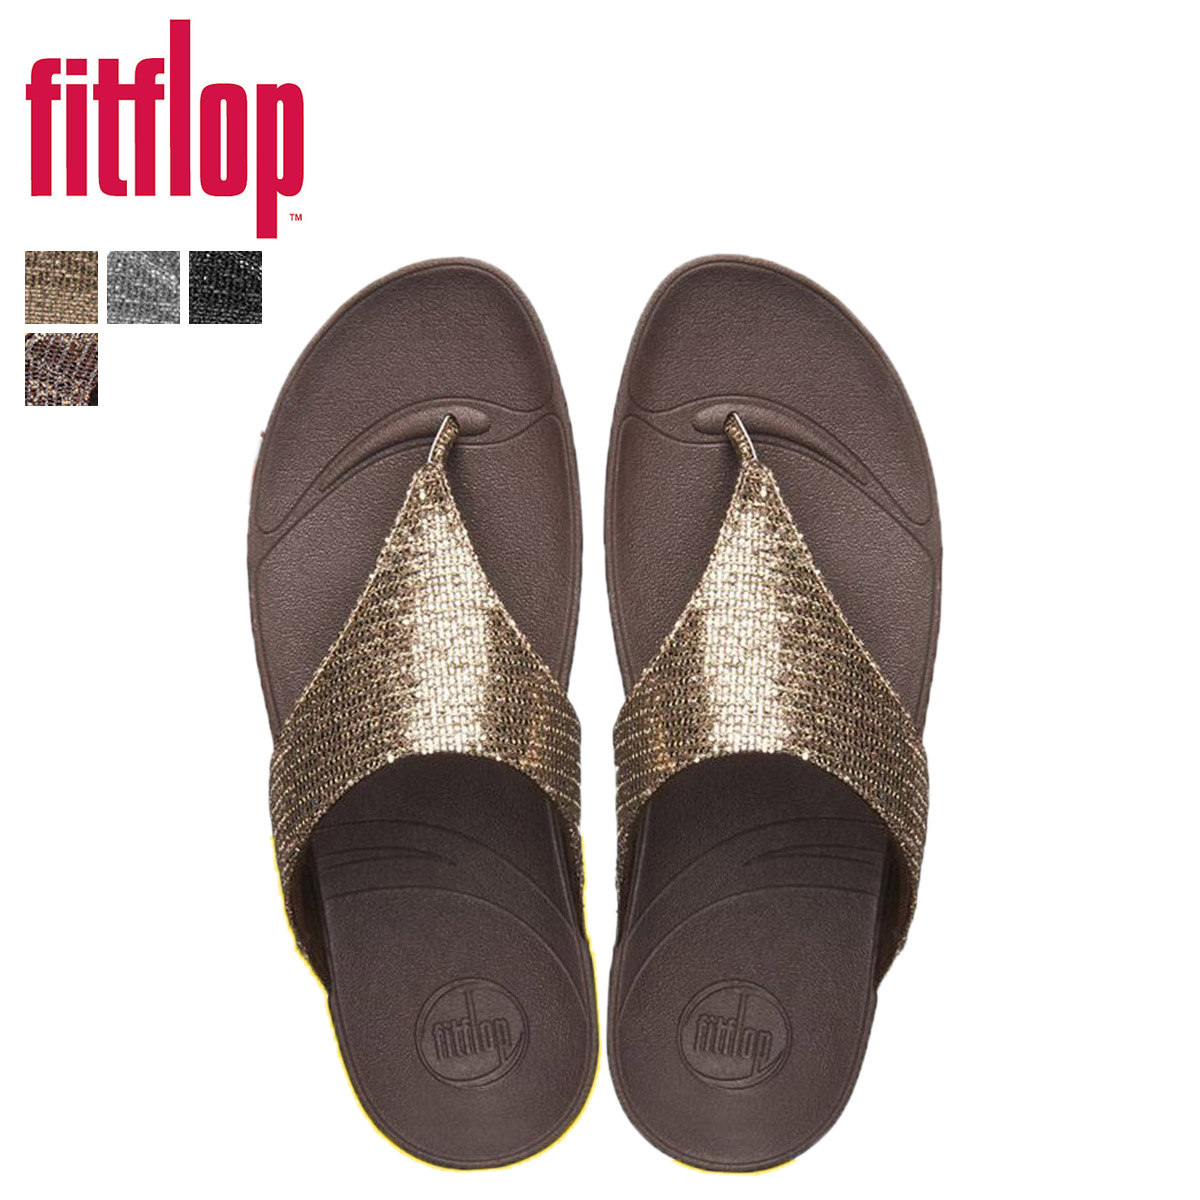 25798f6c2 ... the density put a diverse focus on the fit flop Sandals first. New  generation footwear brand revolutionized the modern shoe industry does not  understand ...